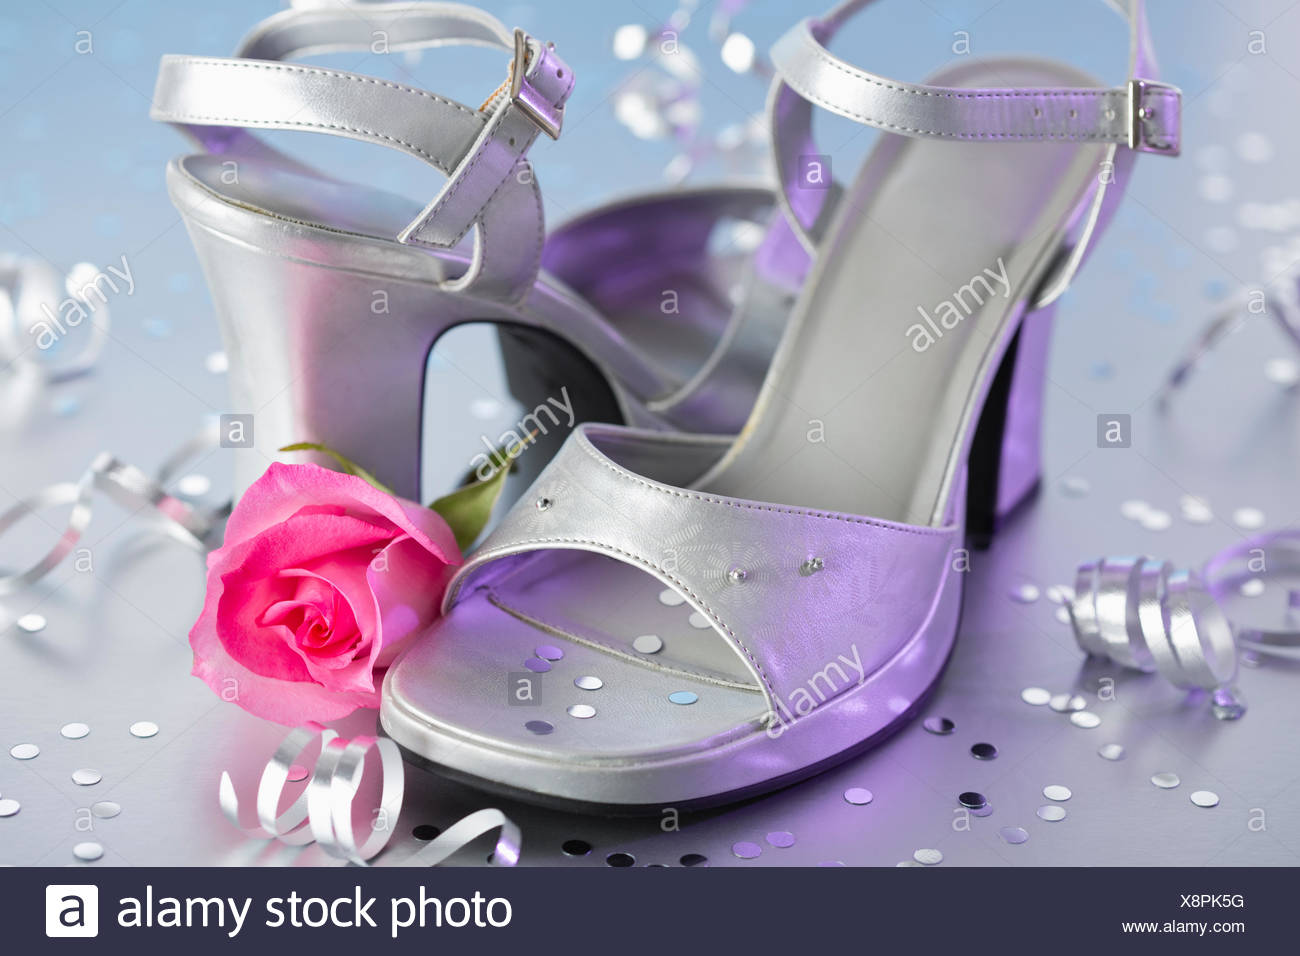 View of high heels and pink rose - Stock Image